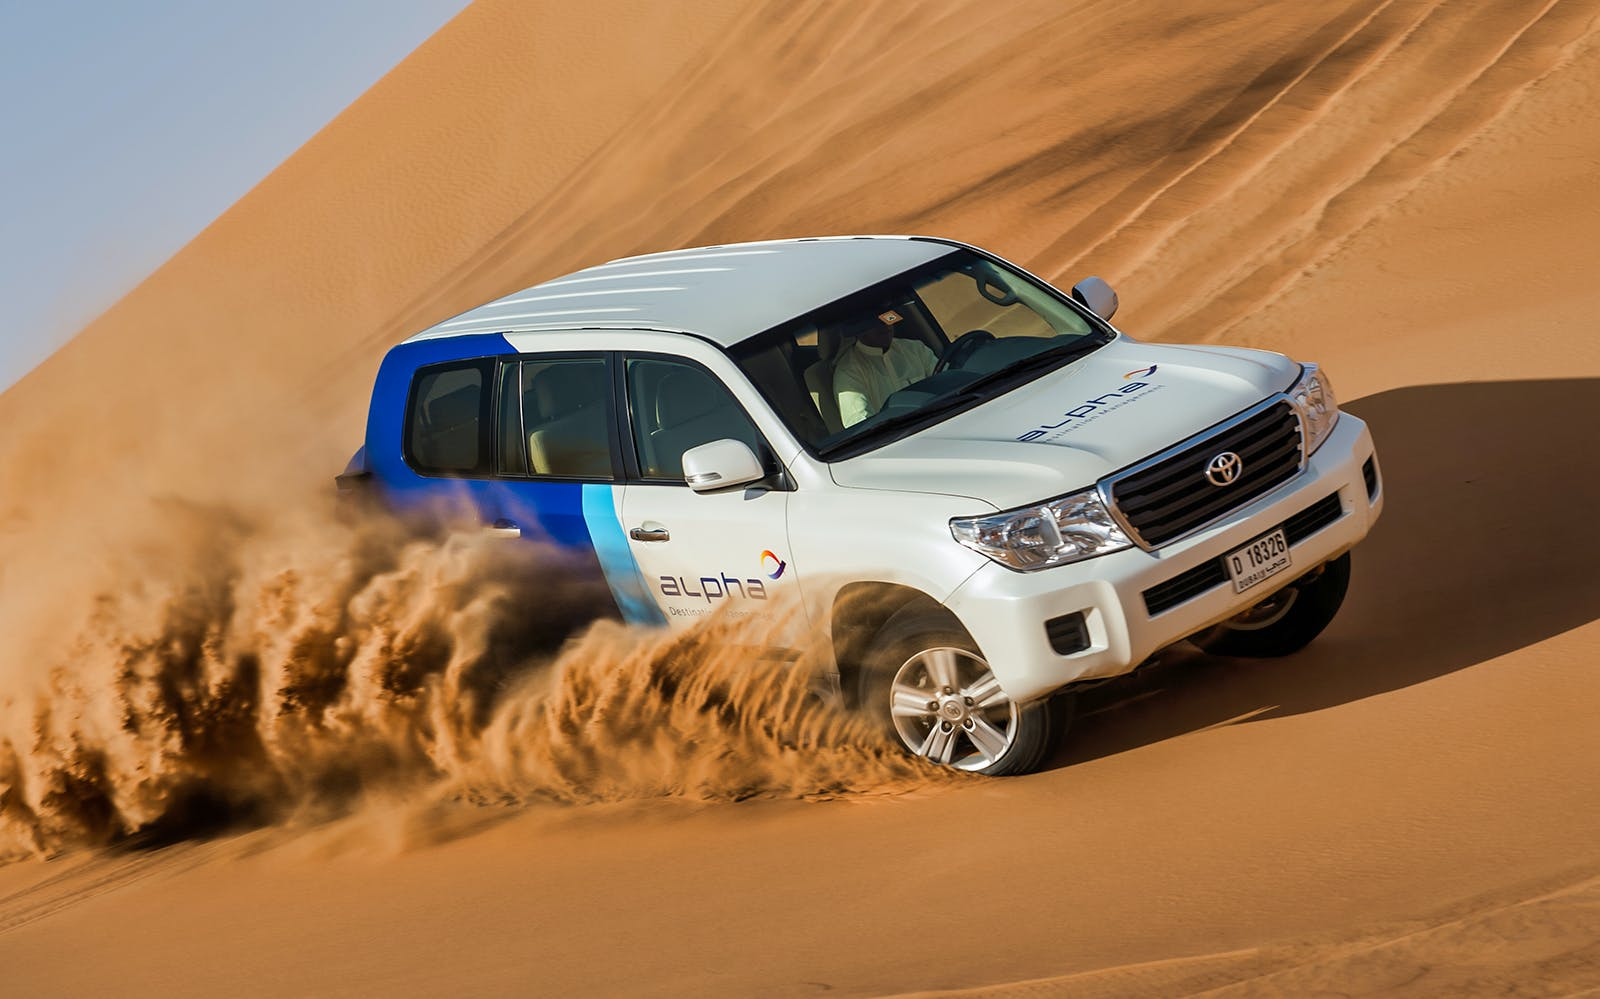 luxury desert safari at dubai desert conservation reserve-2